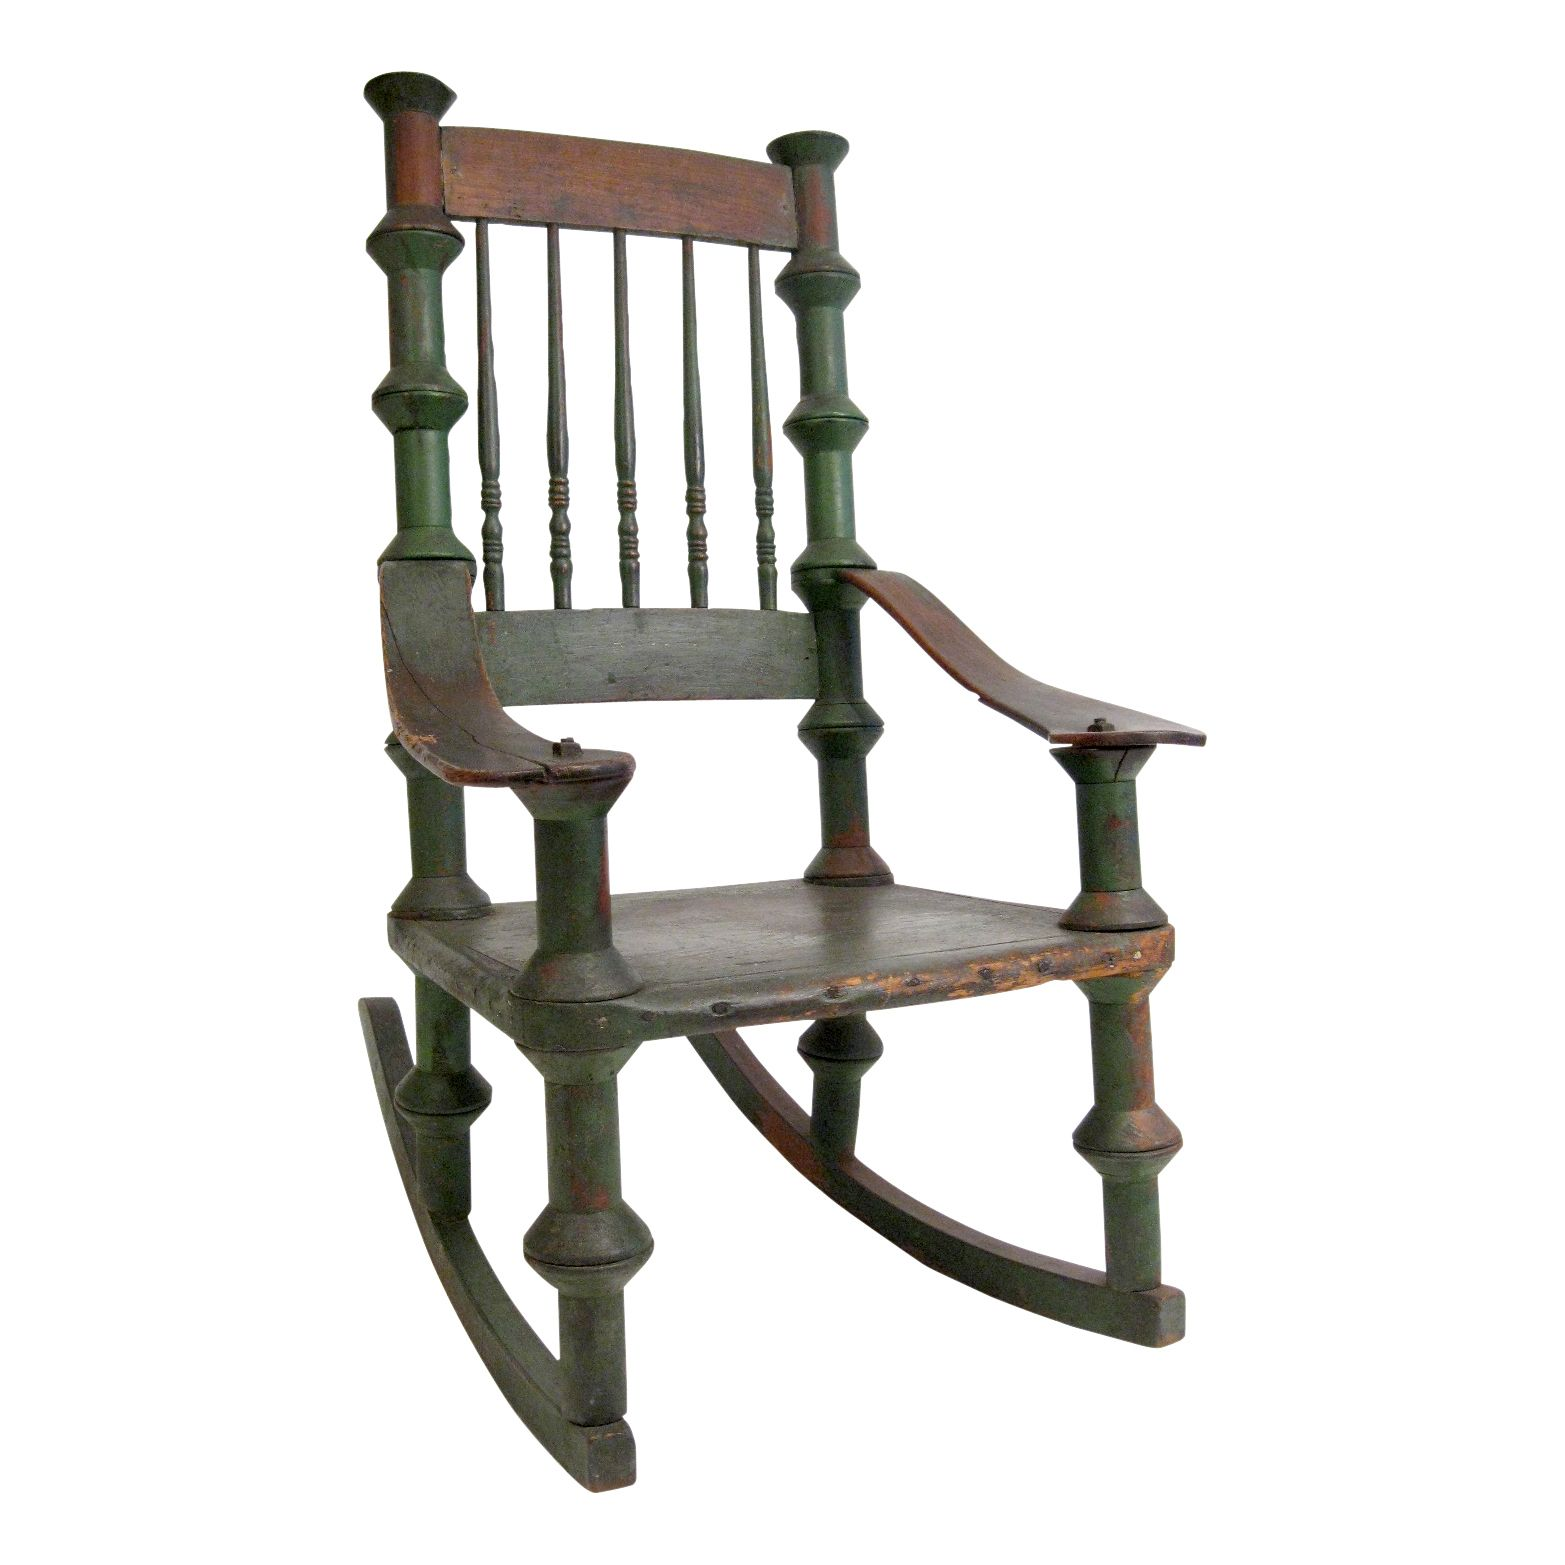 Early 20th Century Reclaimed Wood Rocking Chair | VandM.com Old Wooden  Spindles